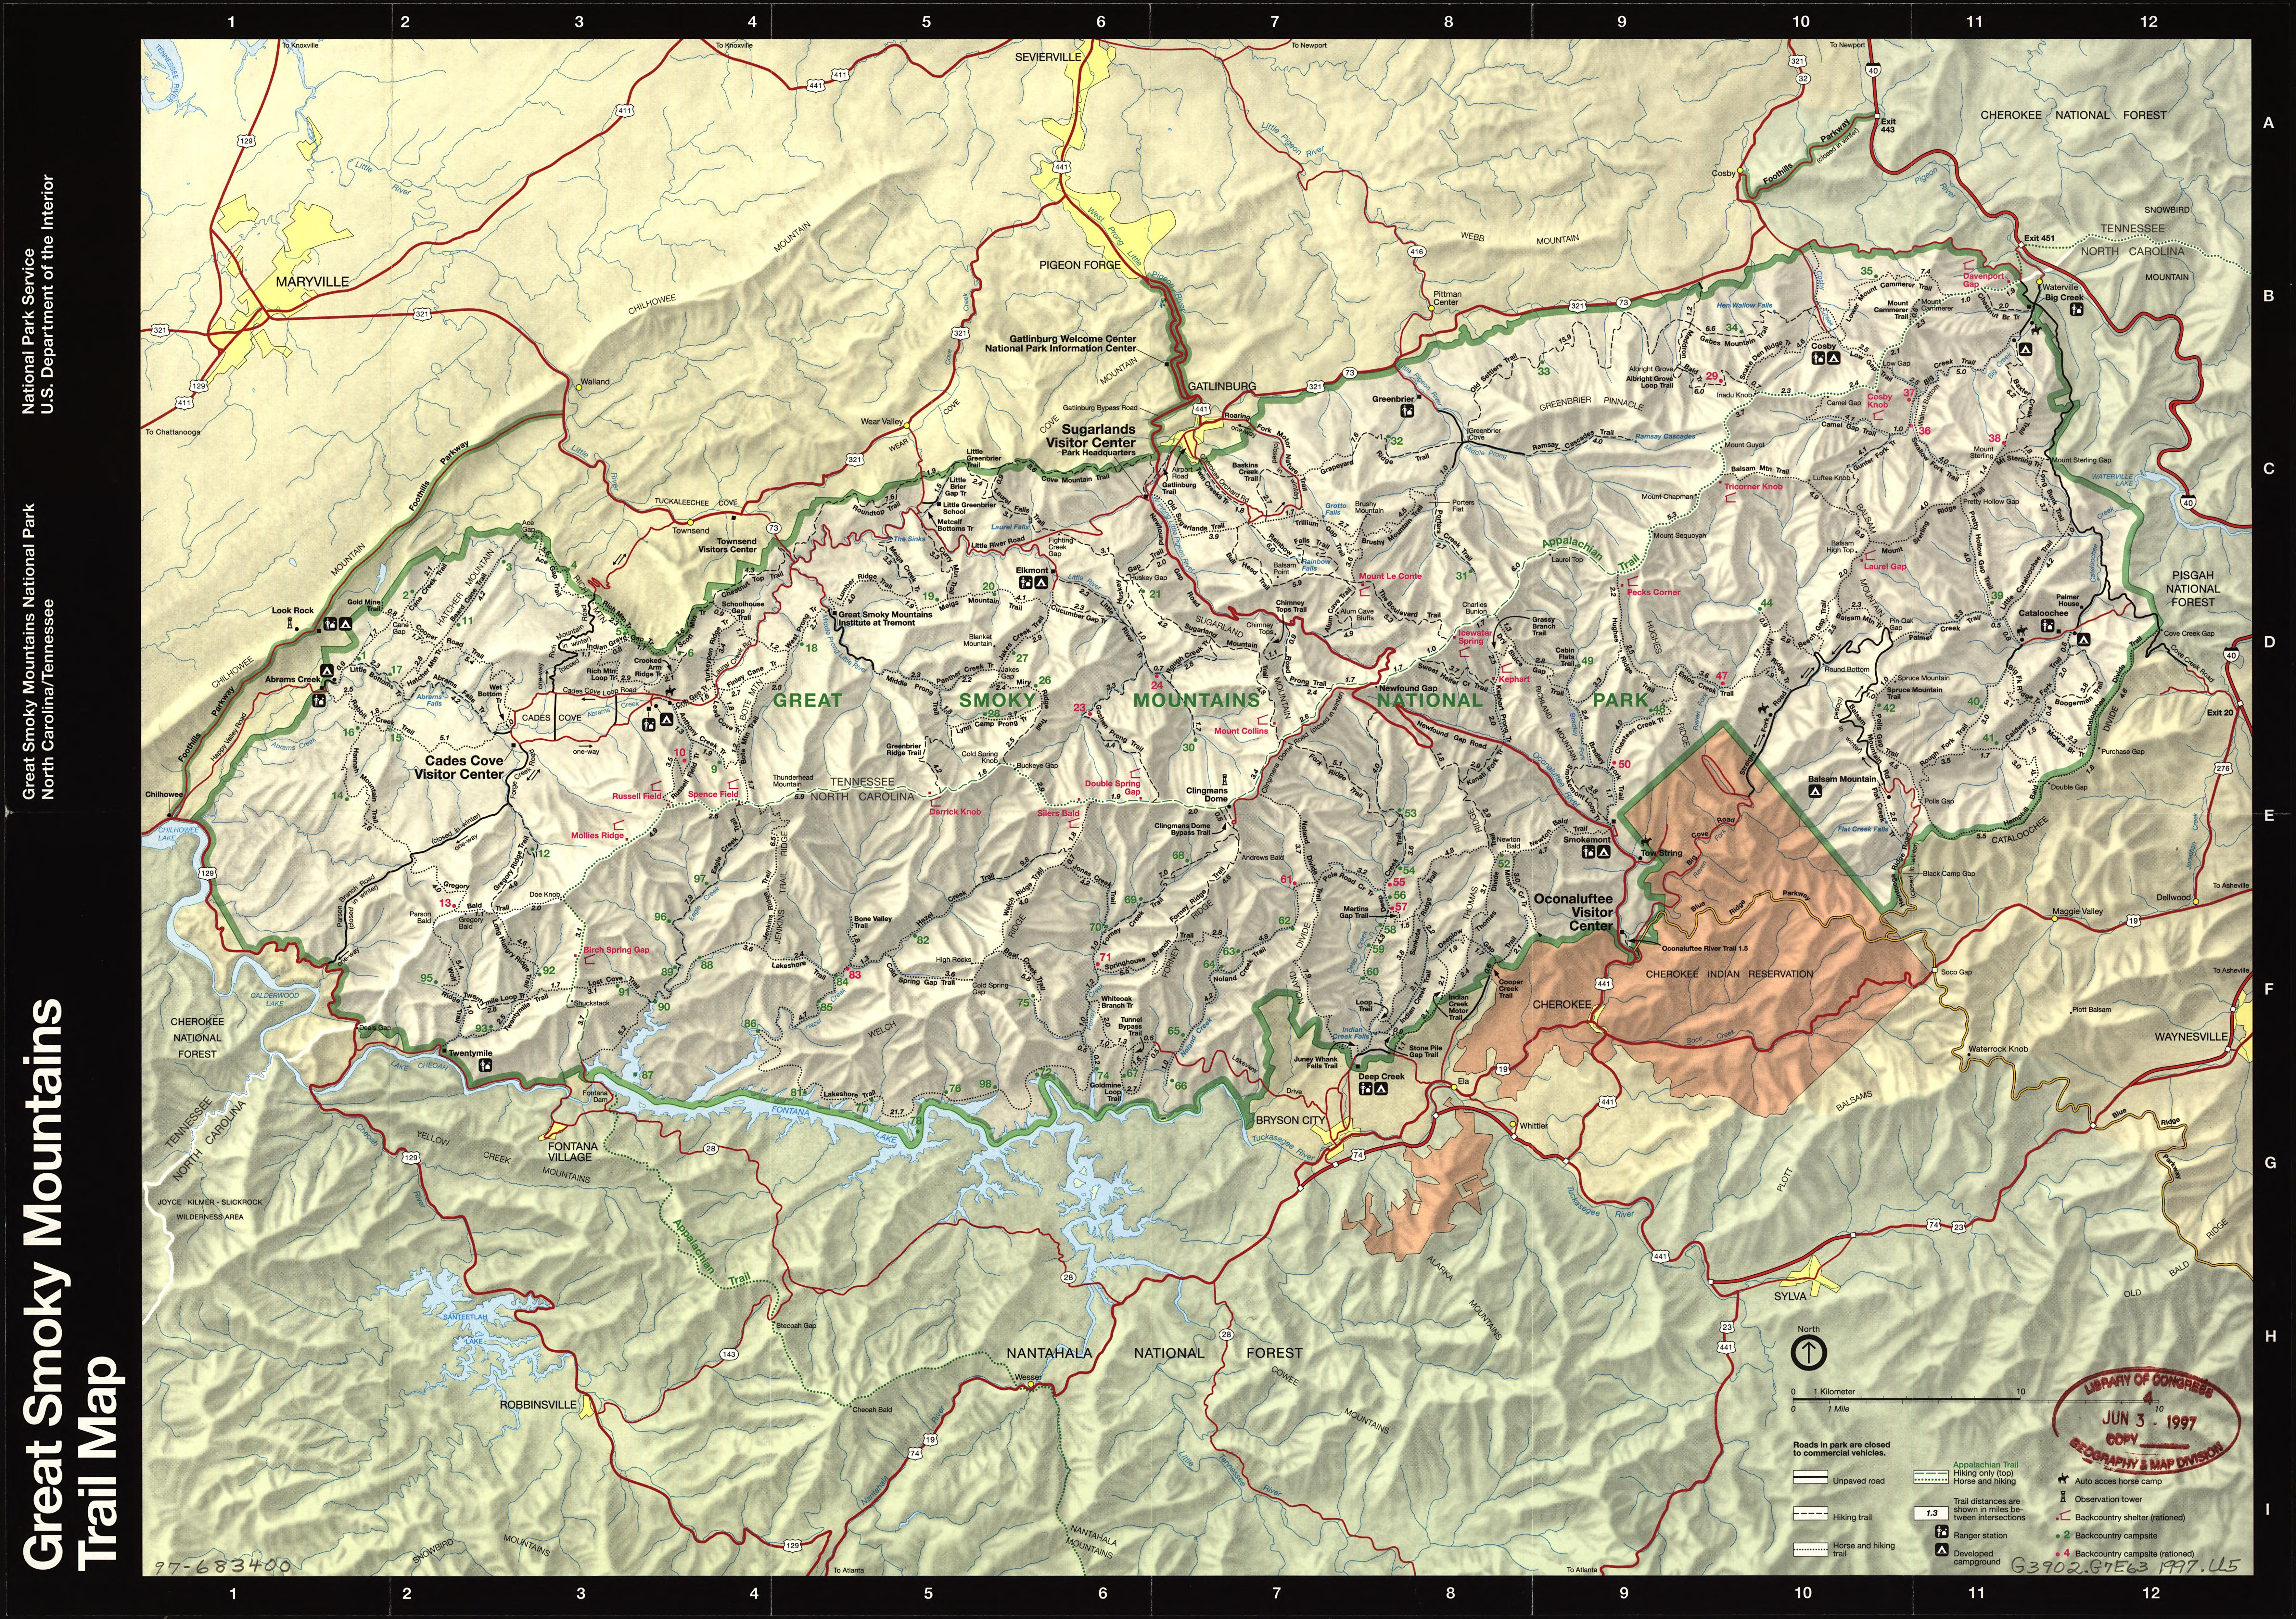 National Park Service trails map of Great Smokey Mountains National Park